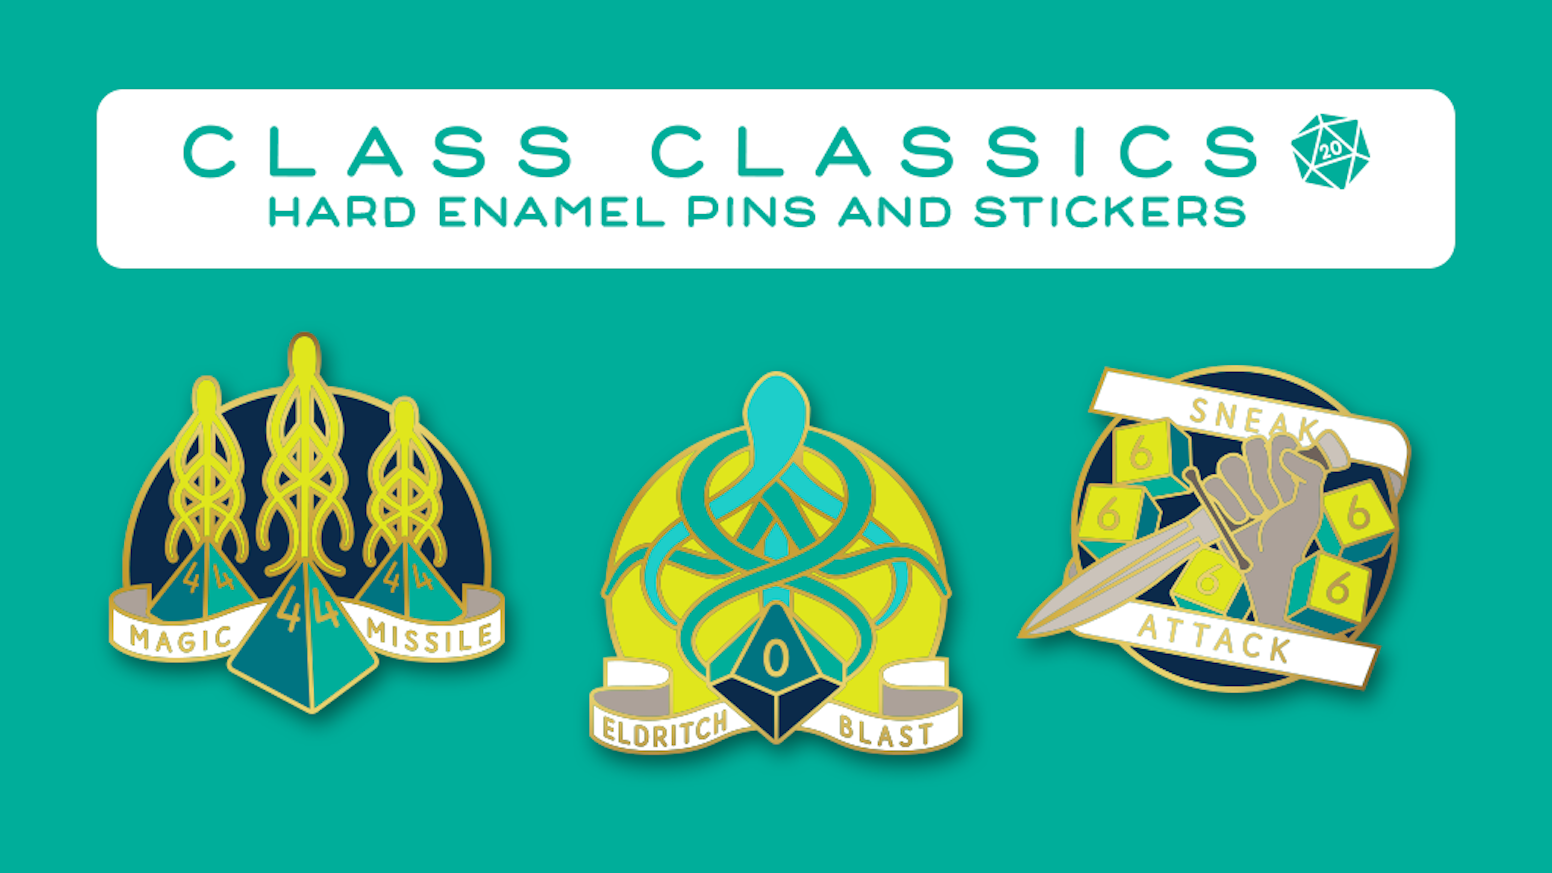 Class Classics - Dungeons and Dragons Hard Enamel Pins